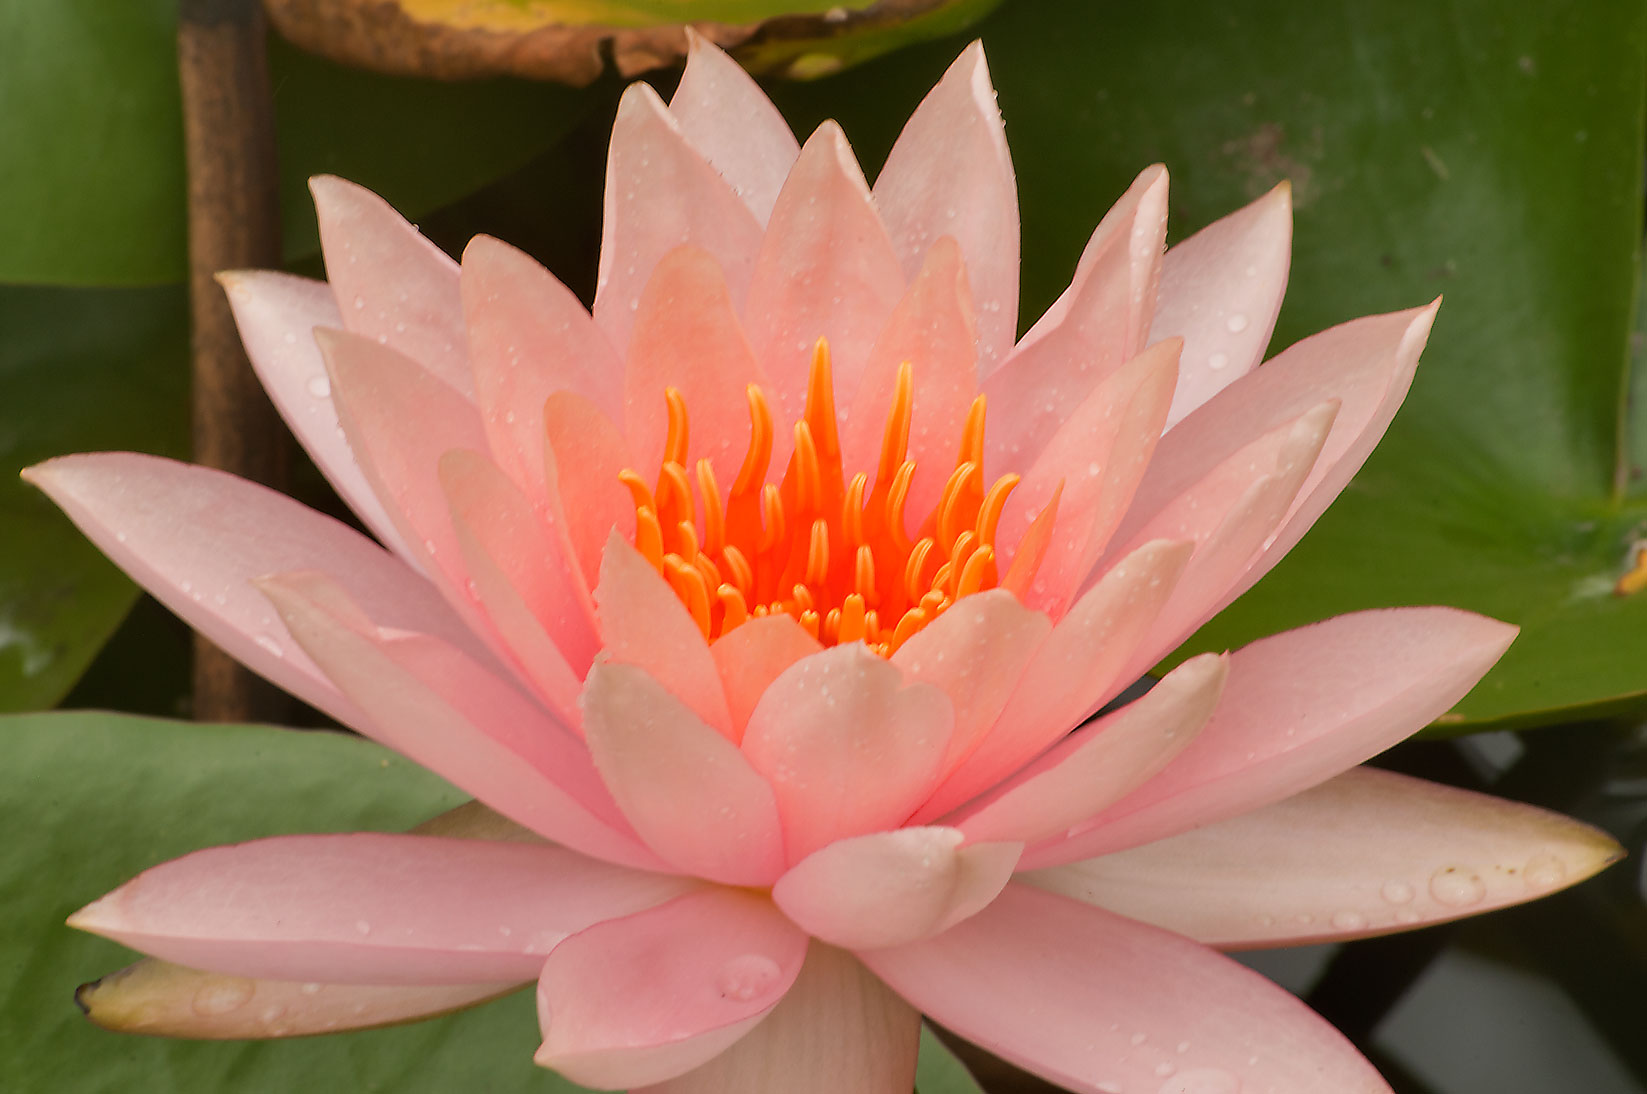 Water lily in TAMU Horticultural Gardens in Texas...M University. College Station, Texas